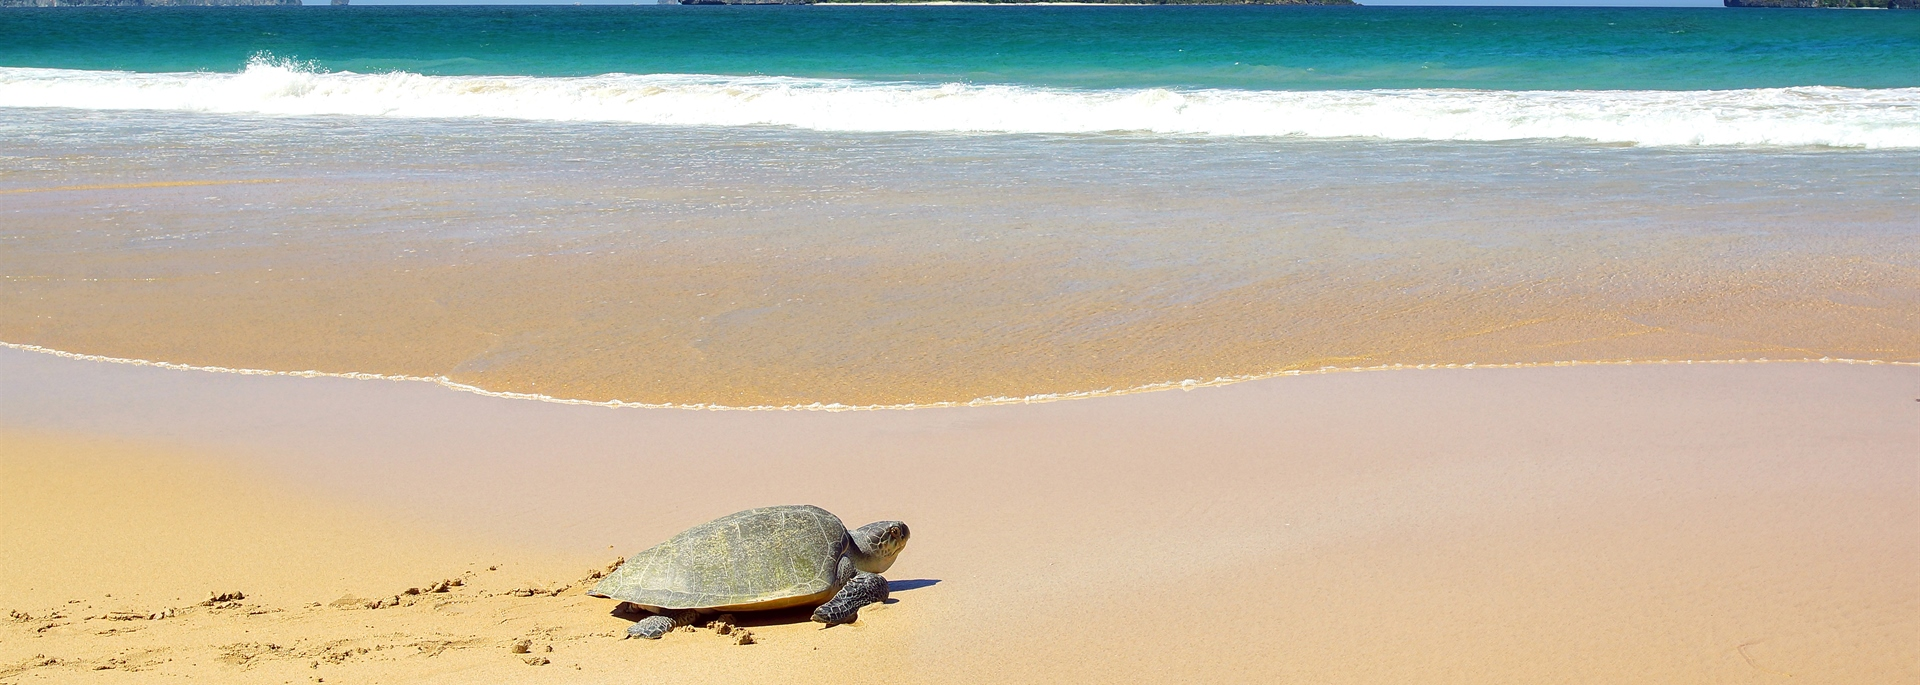 Baby Turtle on Sandy Beach